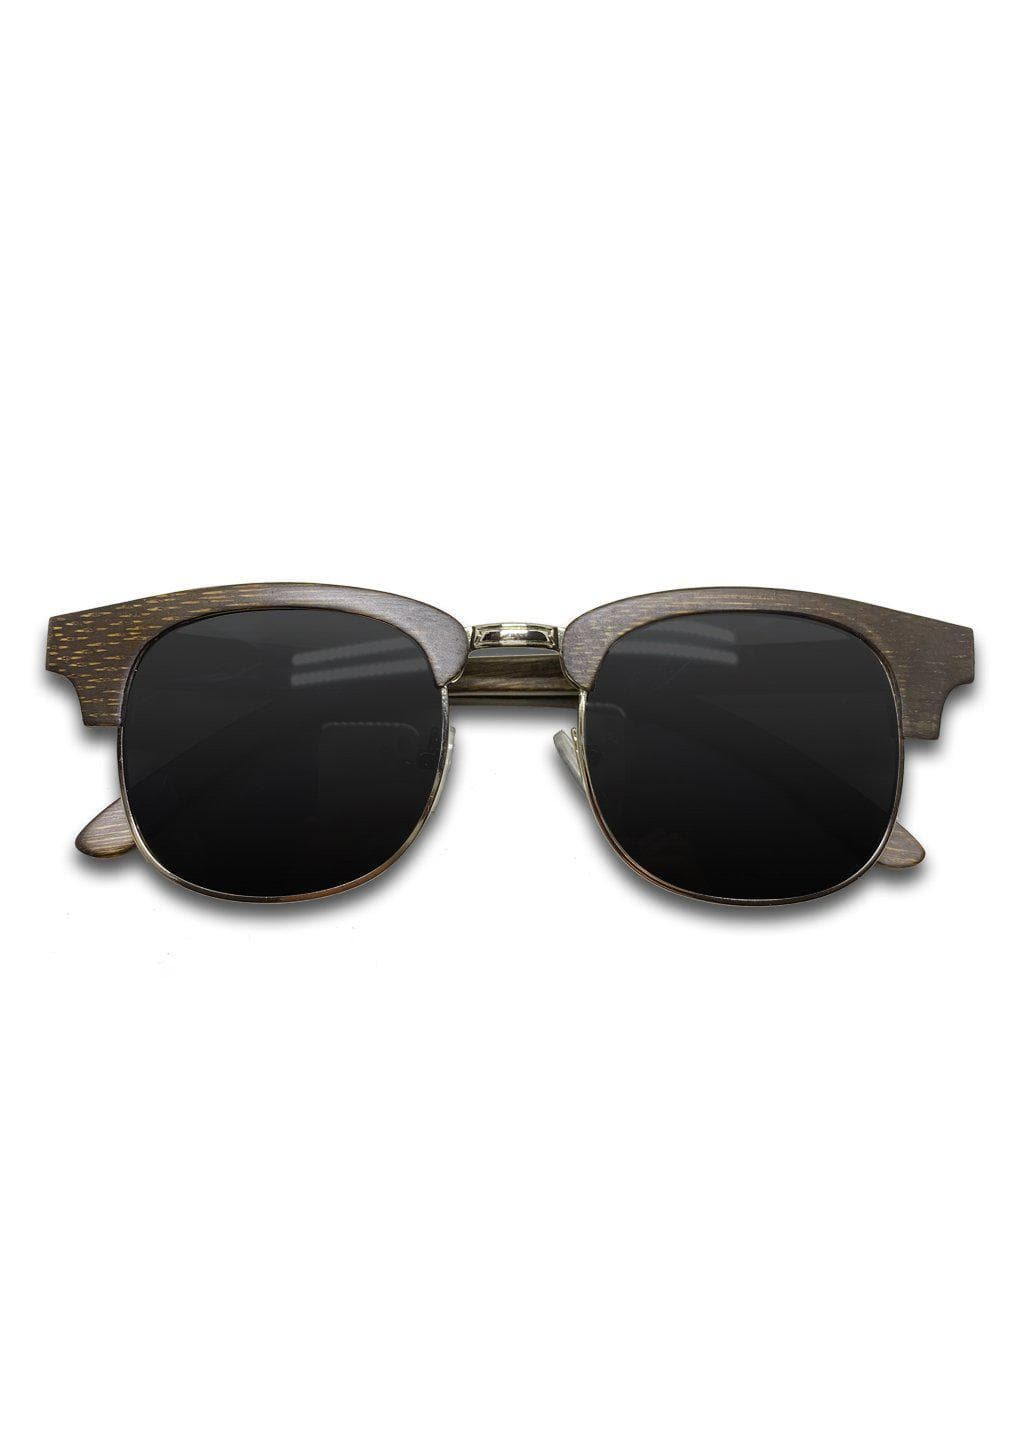 Eyewood Clubmasters is our cool take on classic model. This is Skyler with dark lenses. And also this model is made in all wood.